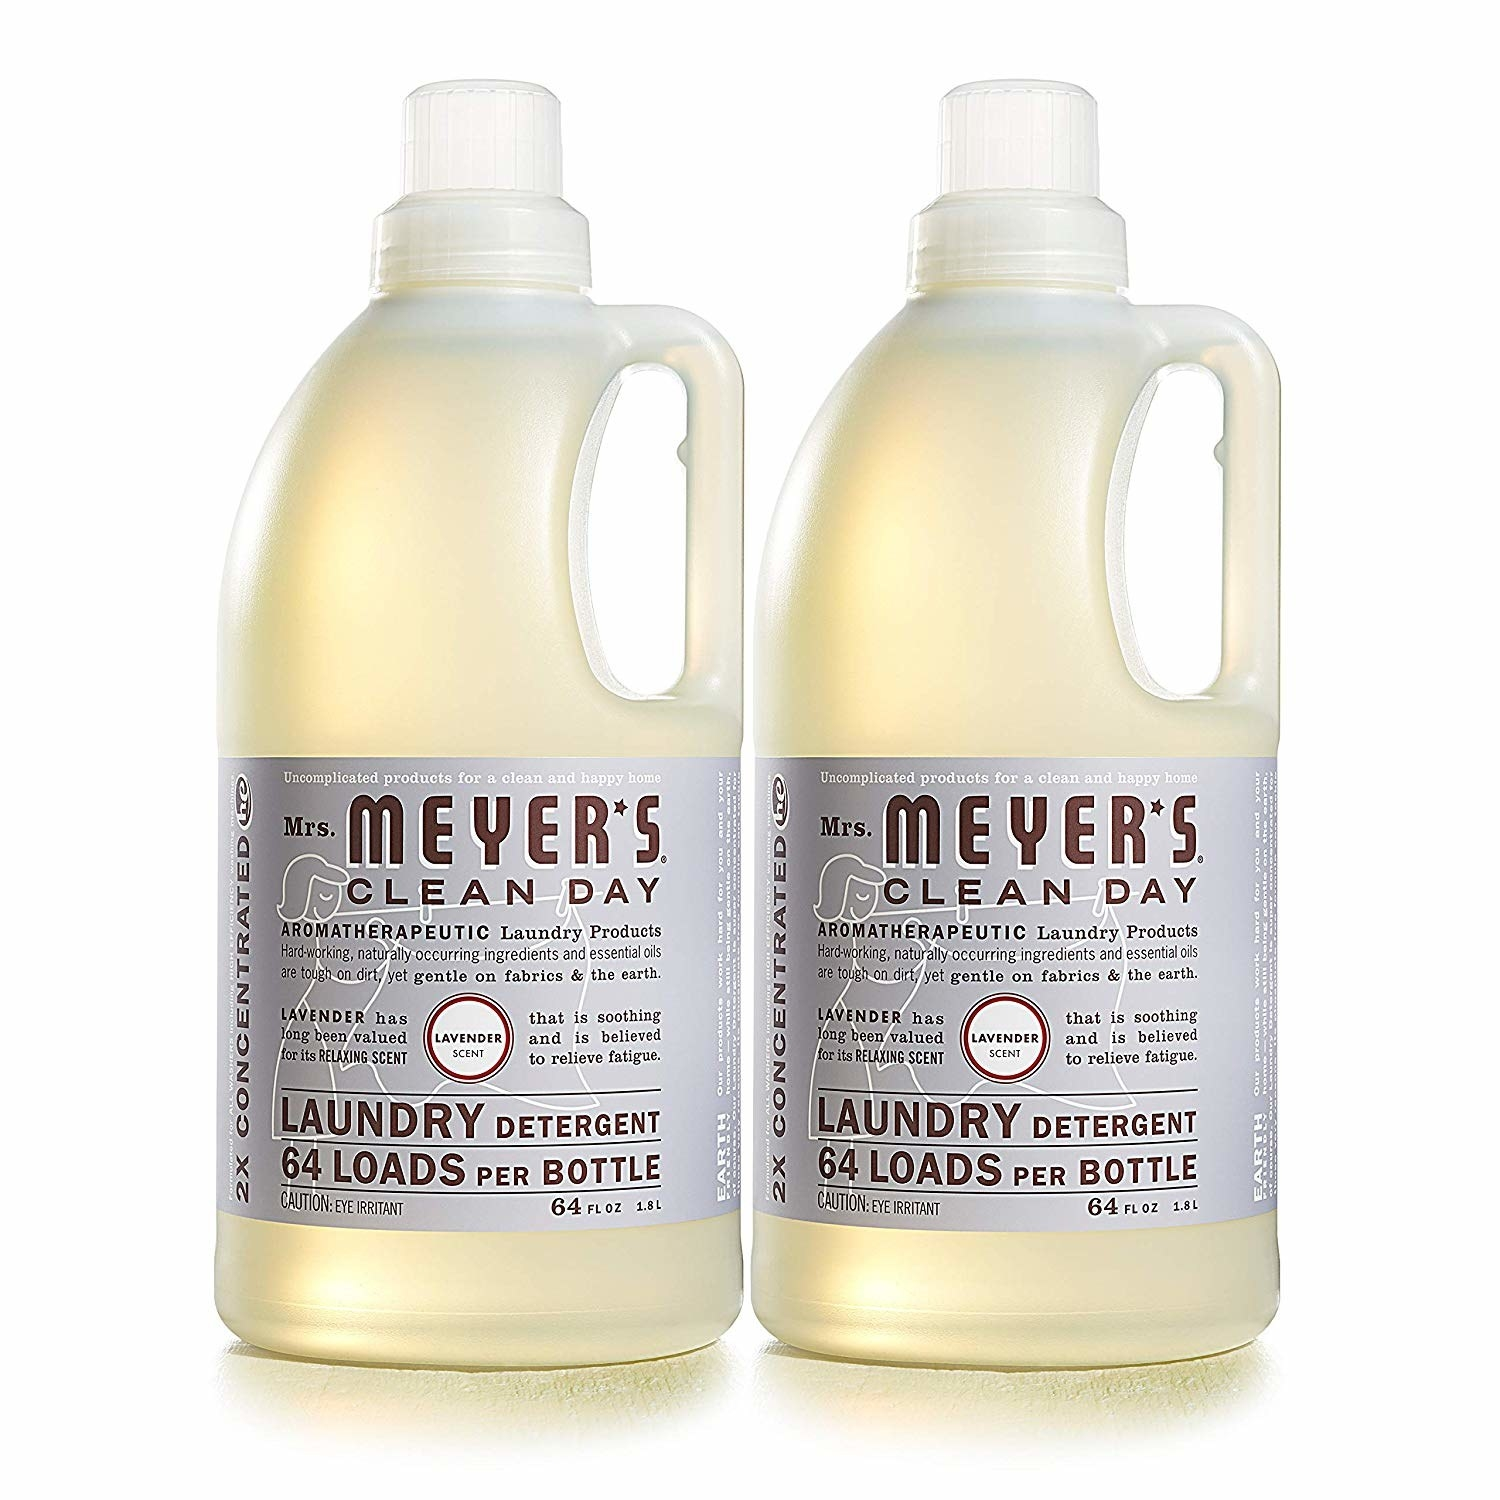 Mrs. Meyers Clean Day laundry detergents